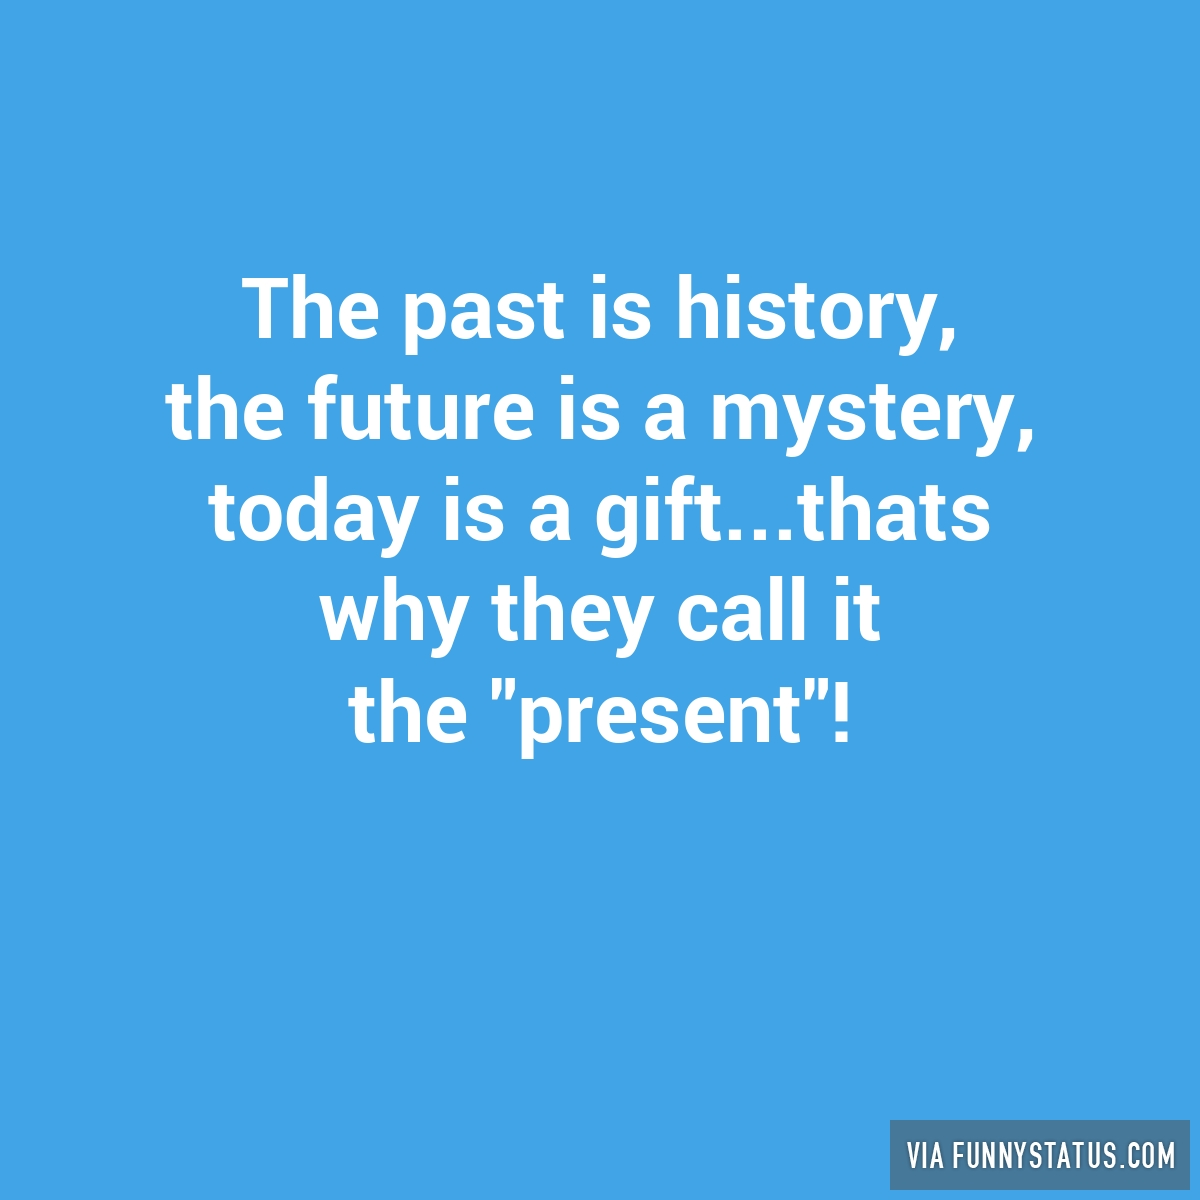 the future of history The following post is excerpted from an opening address by chssp executive director nancy mctygue at the opening session of the teaching the past for tomorrow conference, held november 6-7, 2015.